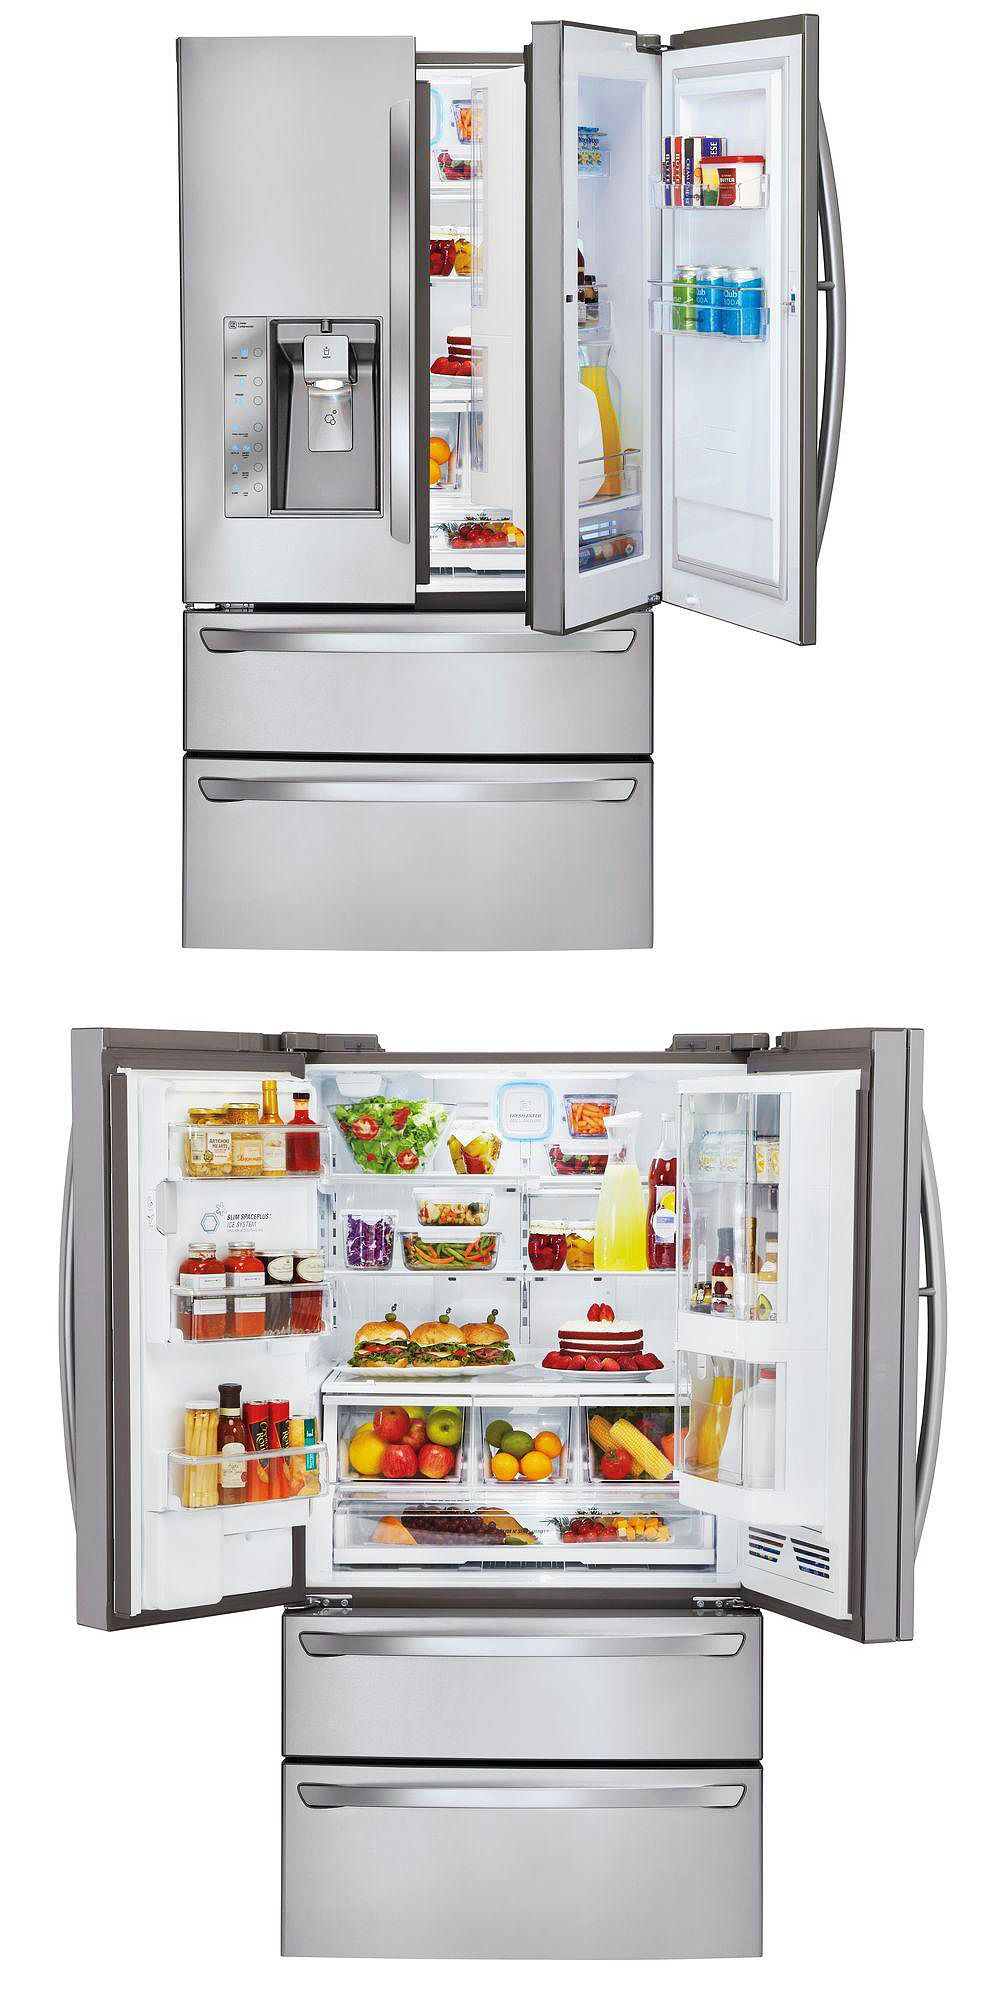 Lg Electronics 30 3 Cu Ft French Door In Door Refrigerator In